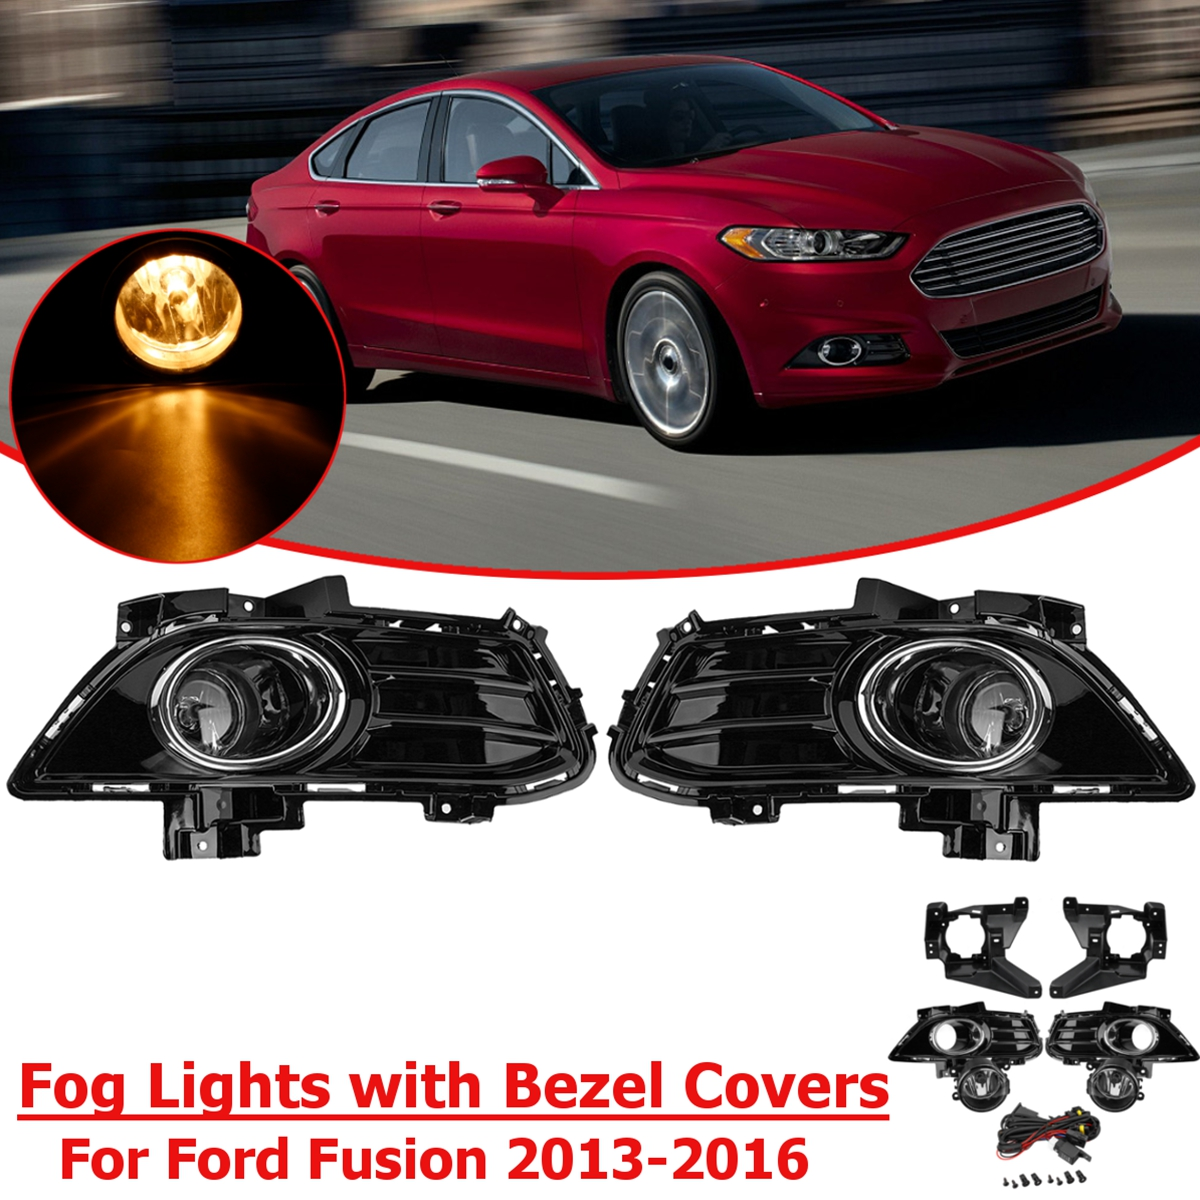 Ford Fusion Fog Light Wiring Harness Ranger Cargo Switch 95 Accord Headlights Front Lights Foglamp Kit With Bezel Covers And Complete On